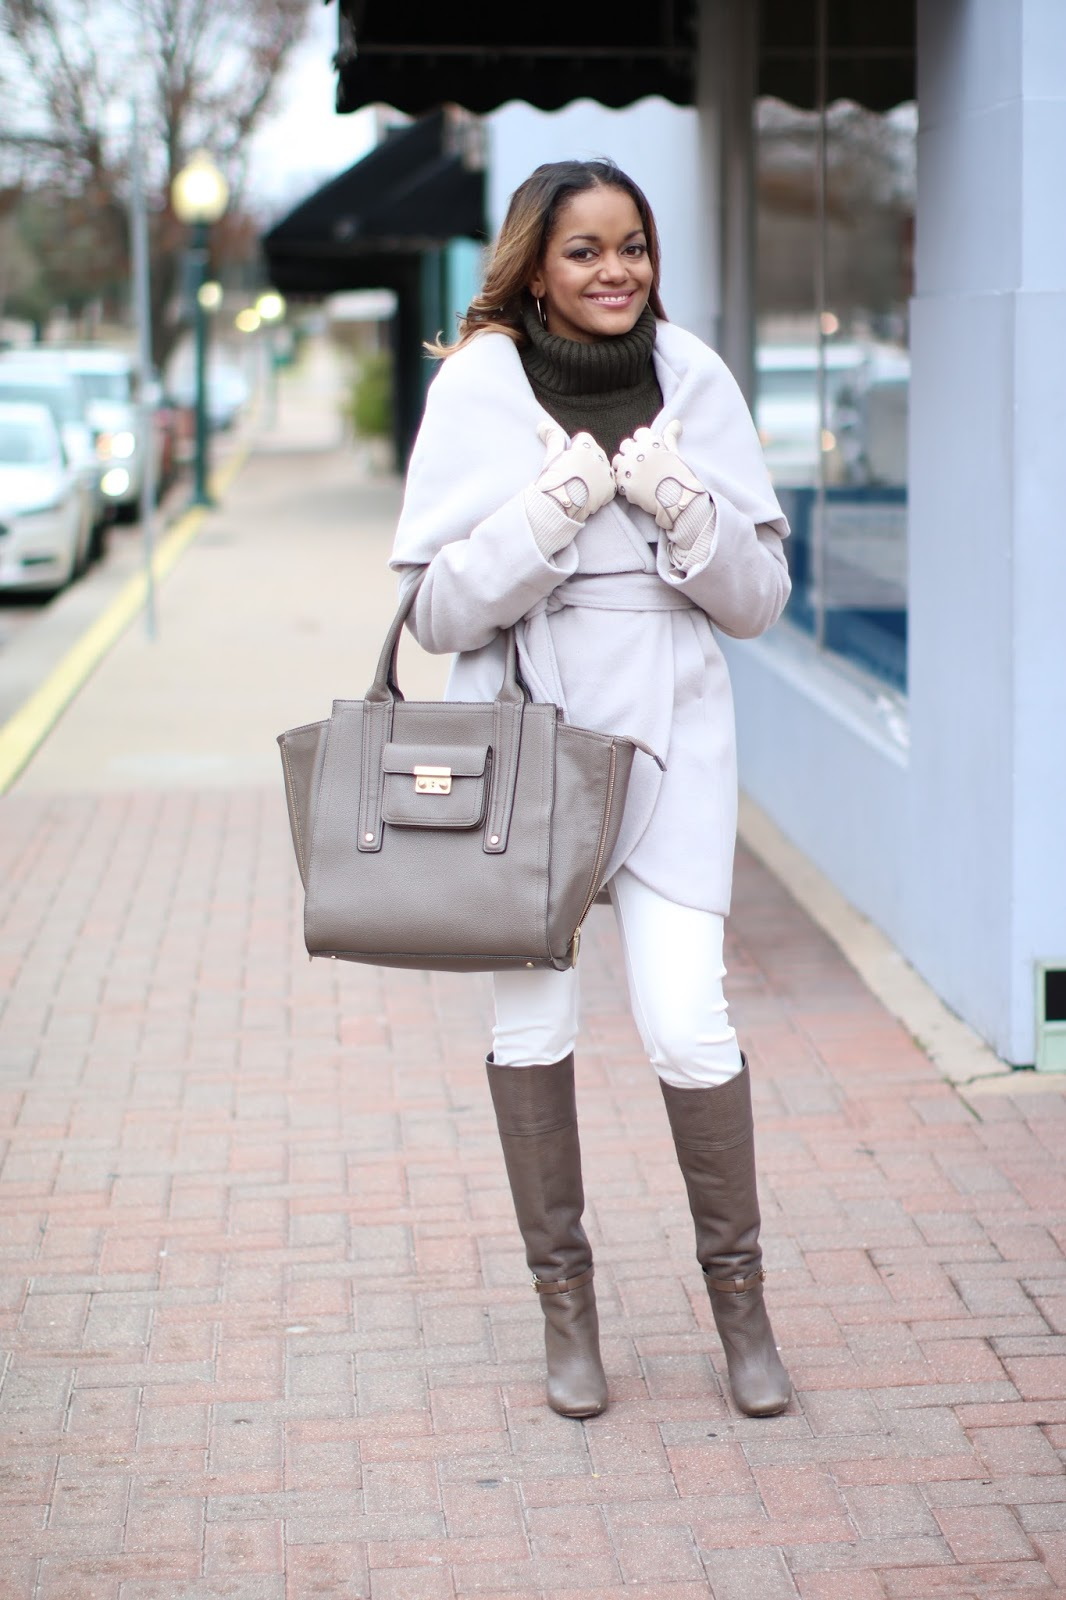 tahari shawl collar coat, shawl collar coat,olivia pope style, henri bendel moto gloves, philip lim for target handbag, tory burch boots, taupe boots, wear white in winter, winter fashion, fashion blogger, dallas blogger, black girl blogger, how to wear neutrals